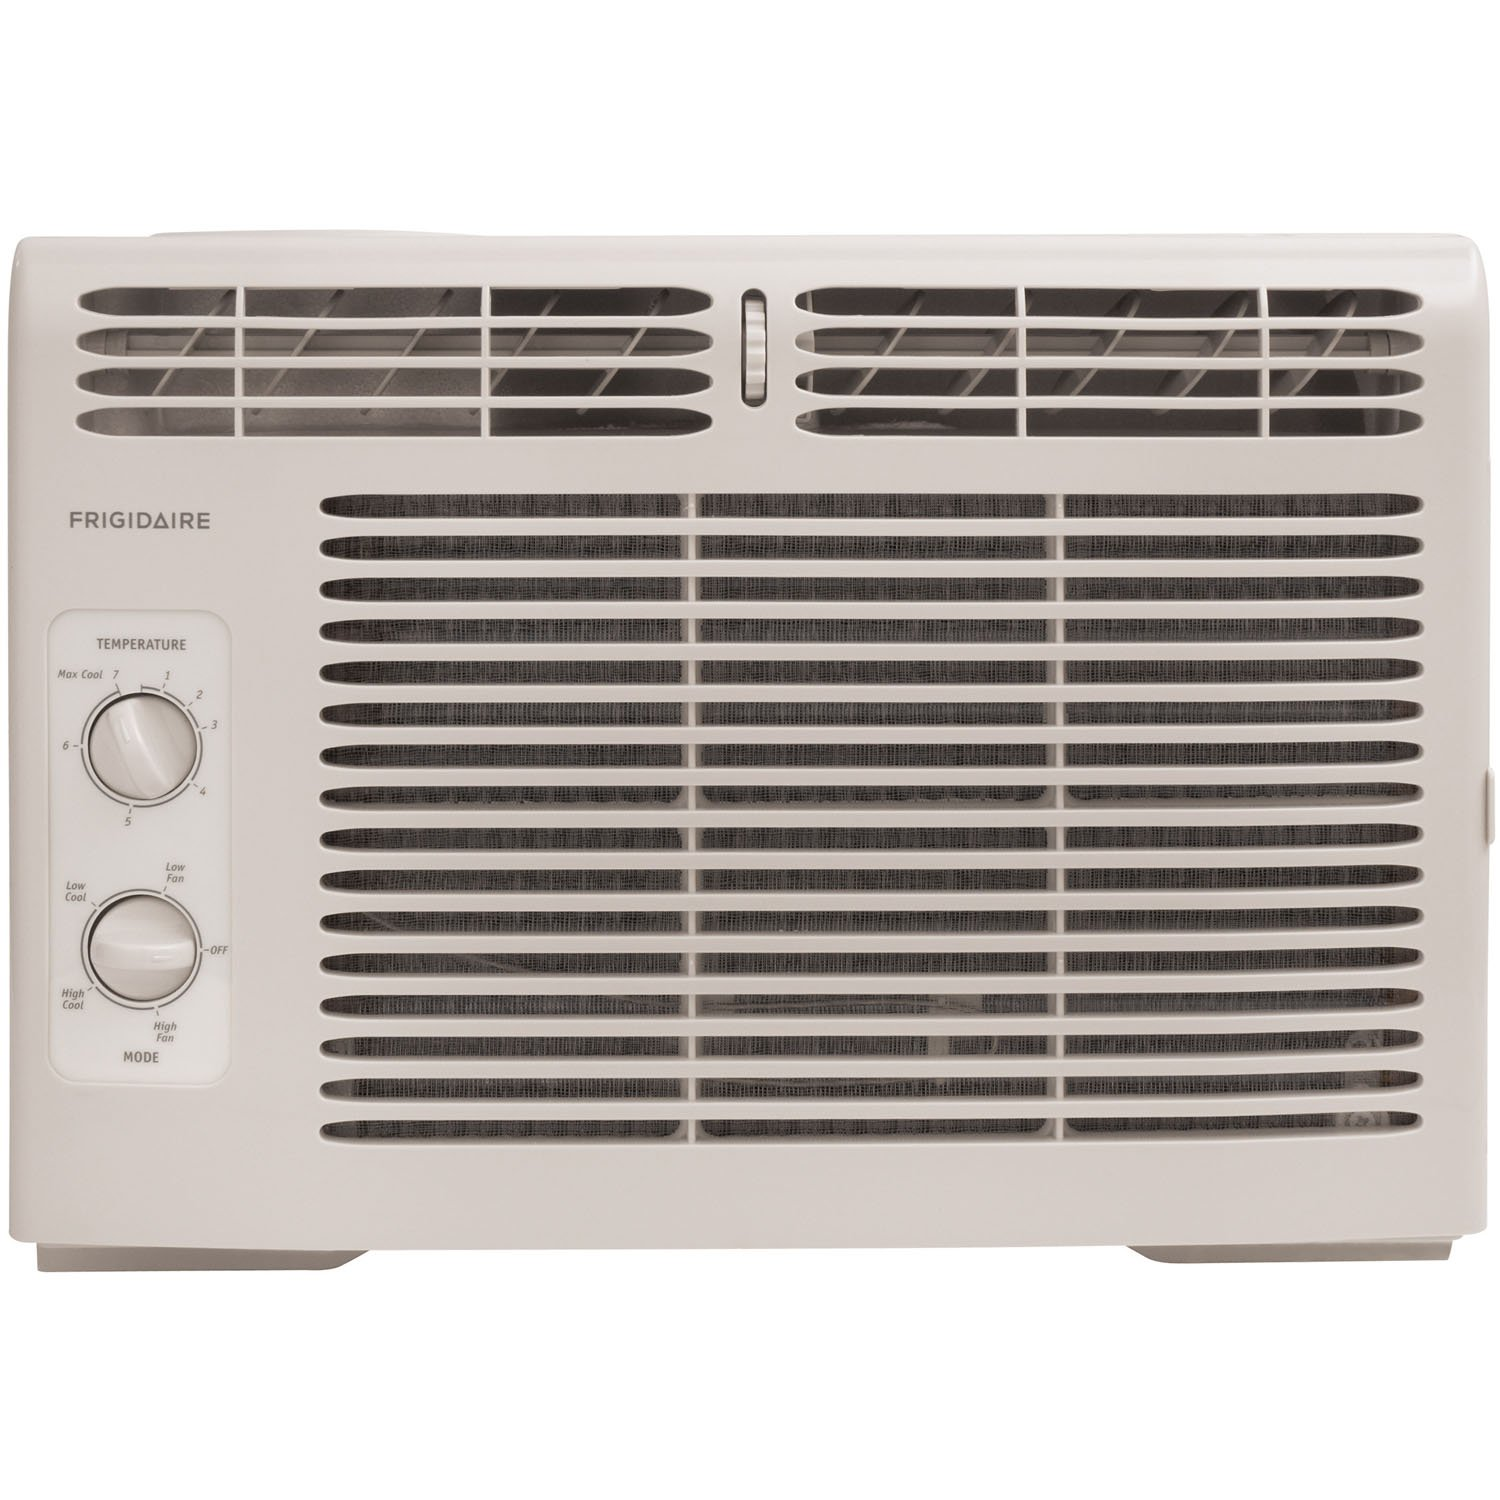 Frigidaire Fra052xt7 Review Best 5 000 Btu Window Air Conditioner 2016